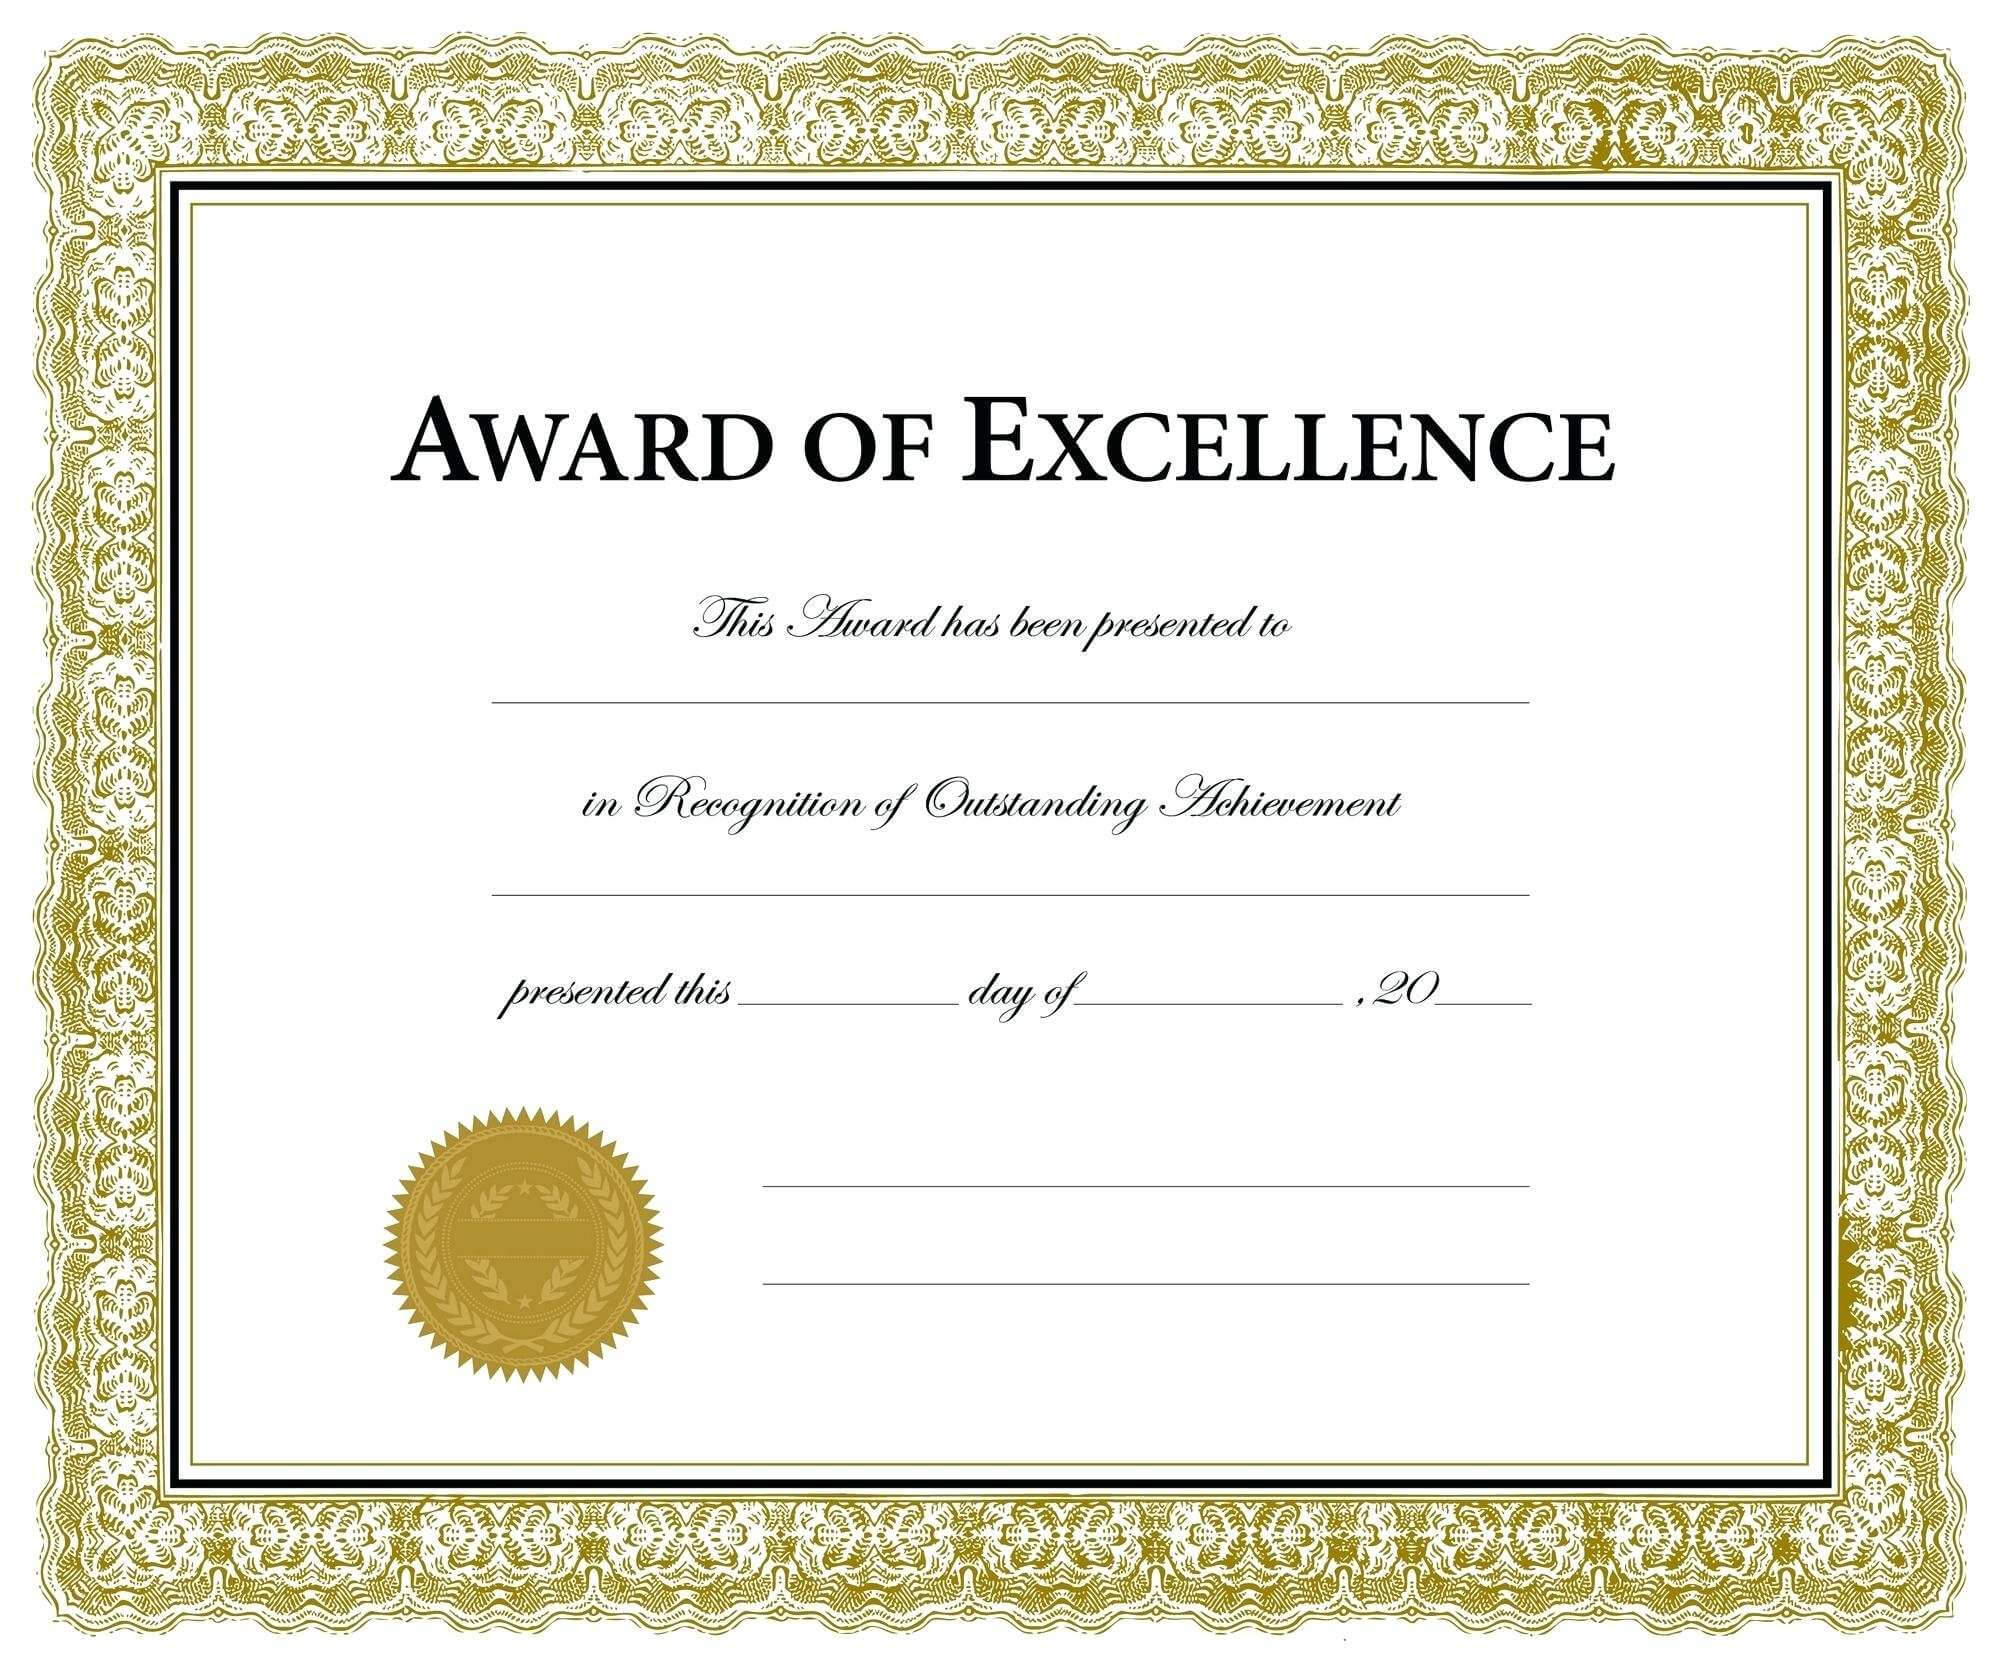 Printable Award Templates - Colona.rsd7 For Blank Award Certificate Templates Word